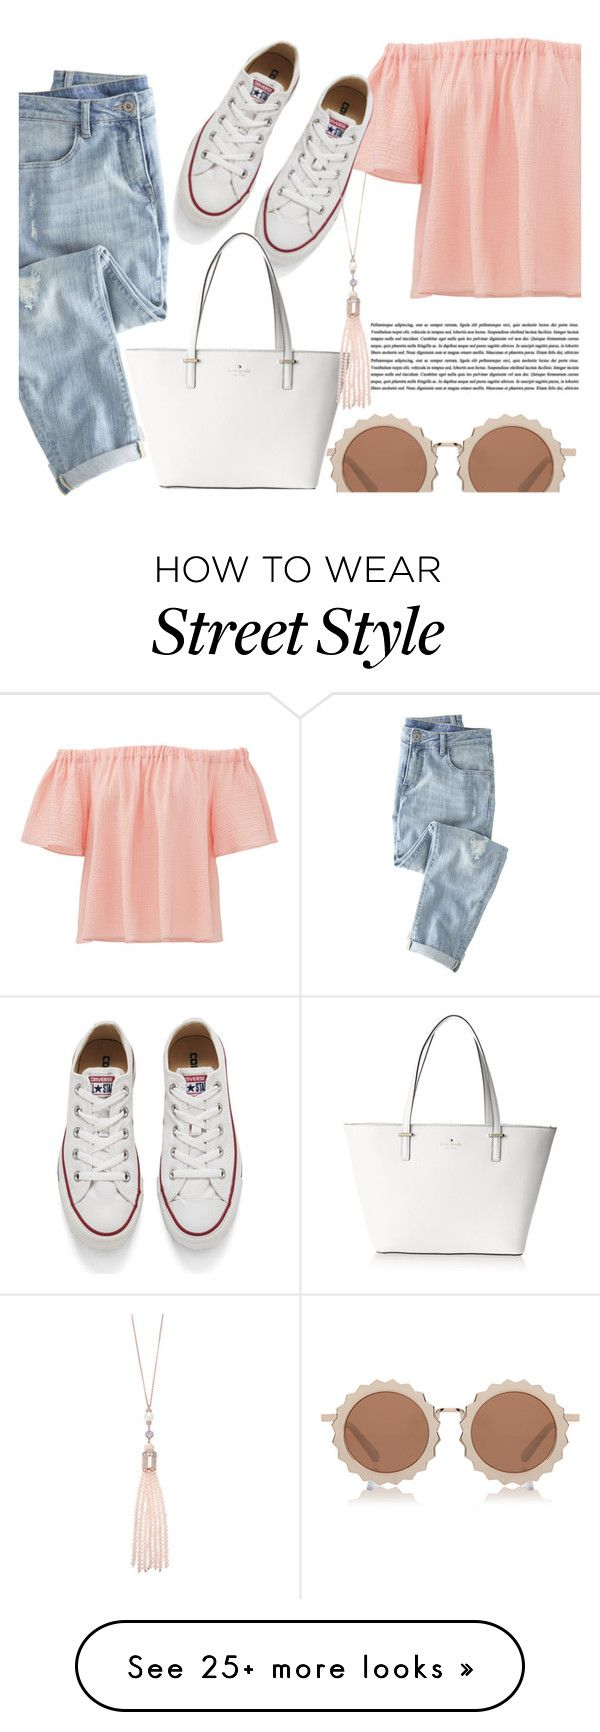 """""""casual thursday"""" by marynz-22 on Polyvore featuring Wrap, Rebecca Taylor, Converse, House of Holland, Kate Spade, Oasis, fashionset and polyvoreeditorial"""